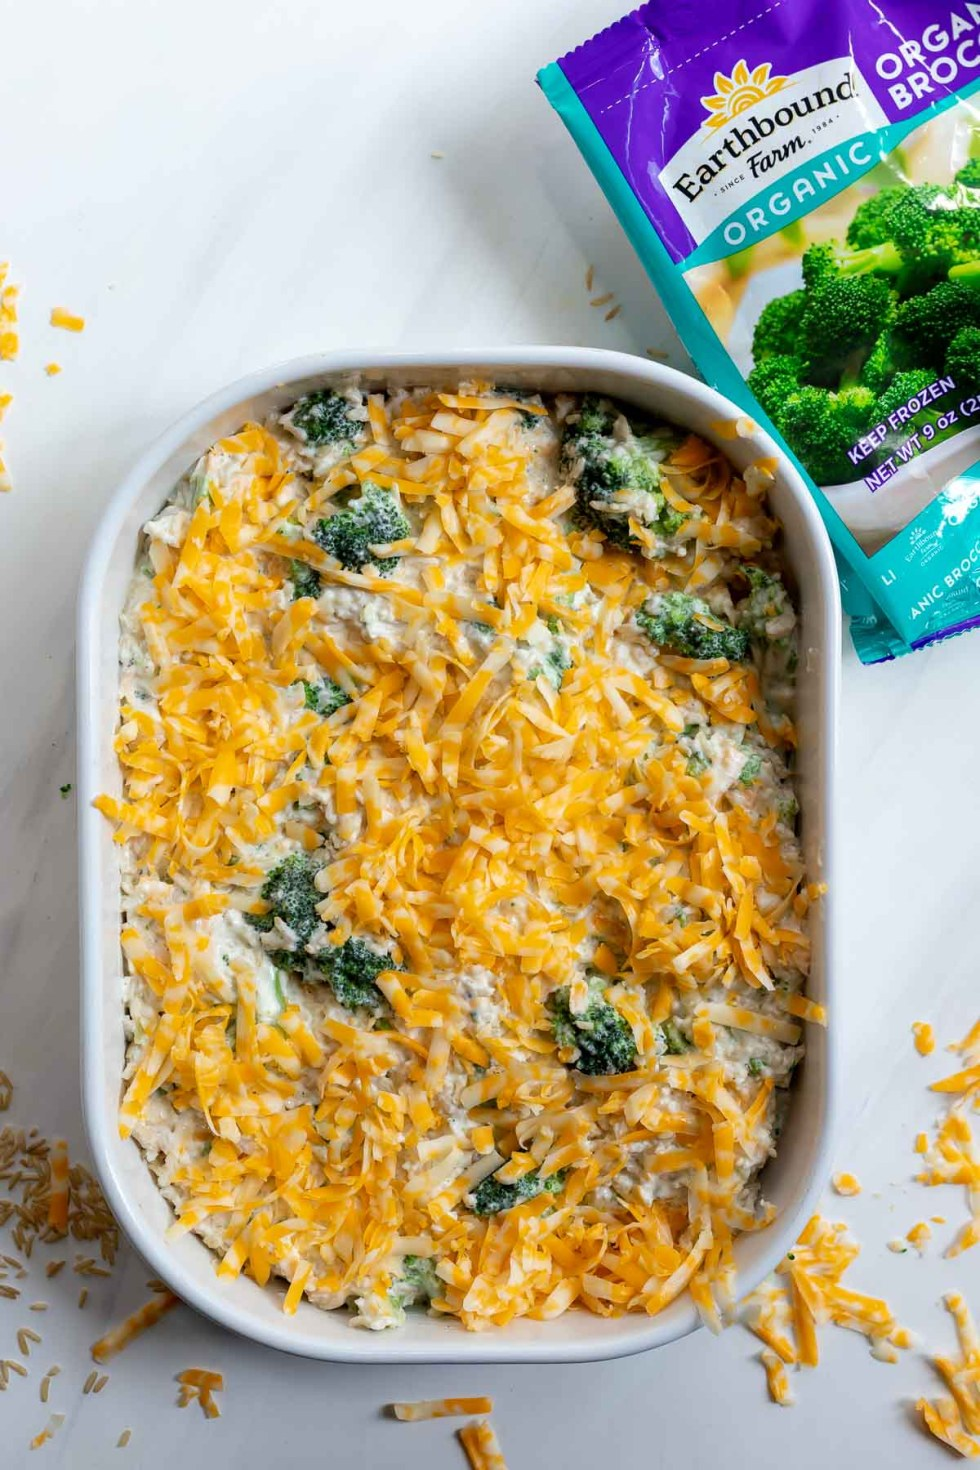 broccoli cheese rice casserole in casserole dish ready to be baked